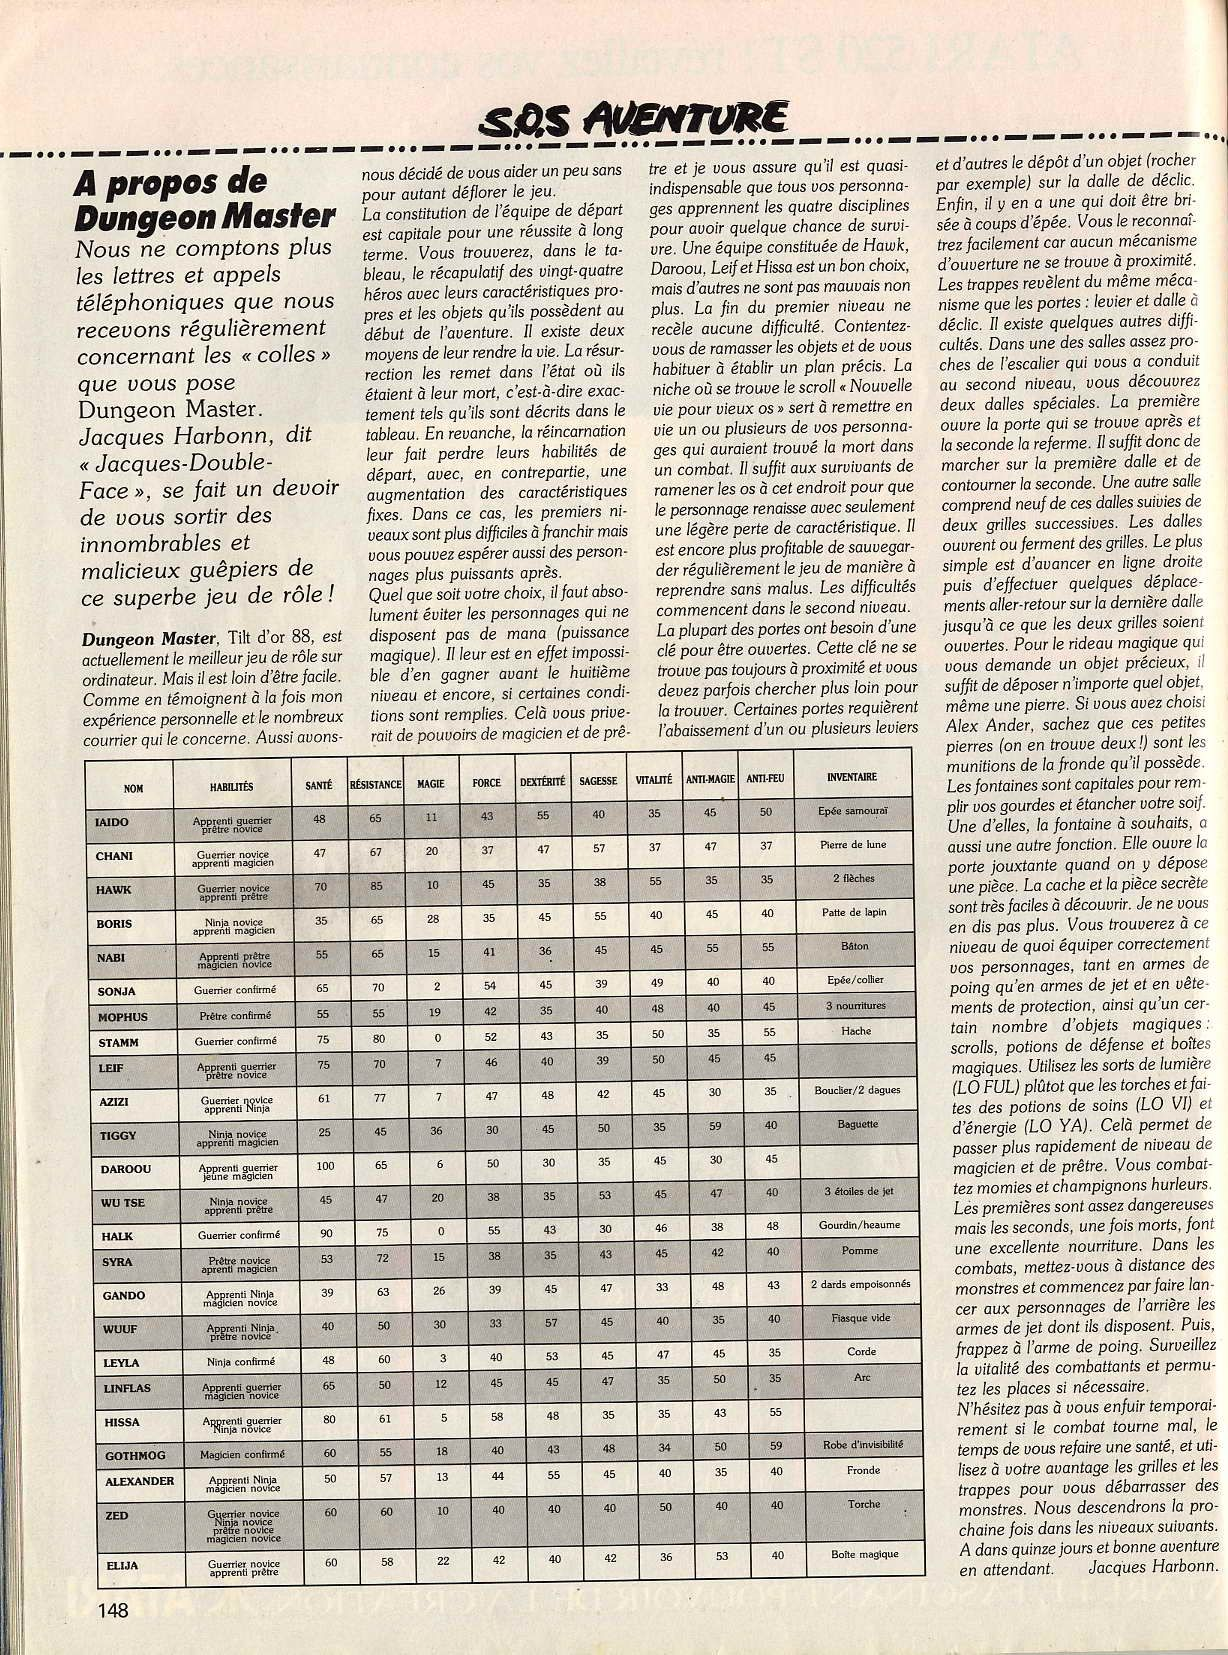 Dungeon Master Hints published in French magazine 'Tilt', Issue#61, December 1988, Page 148